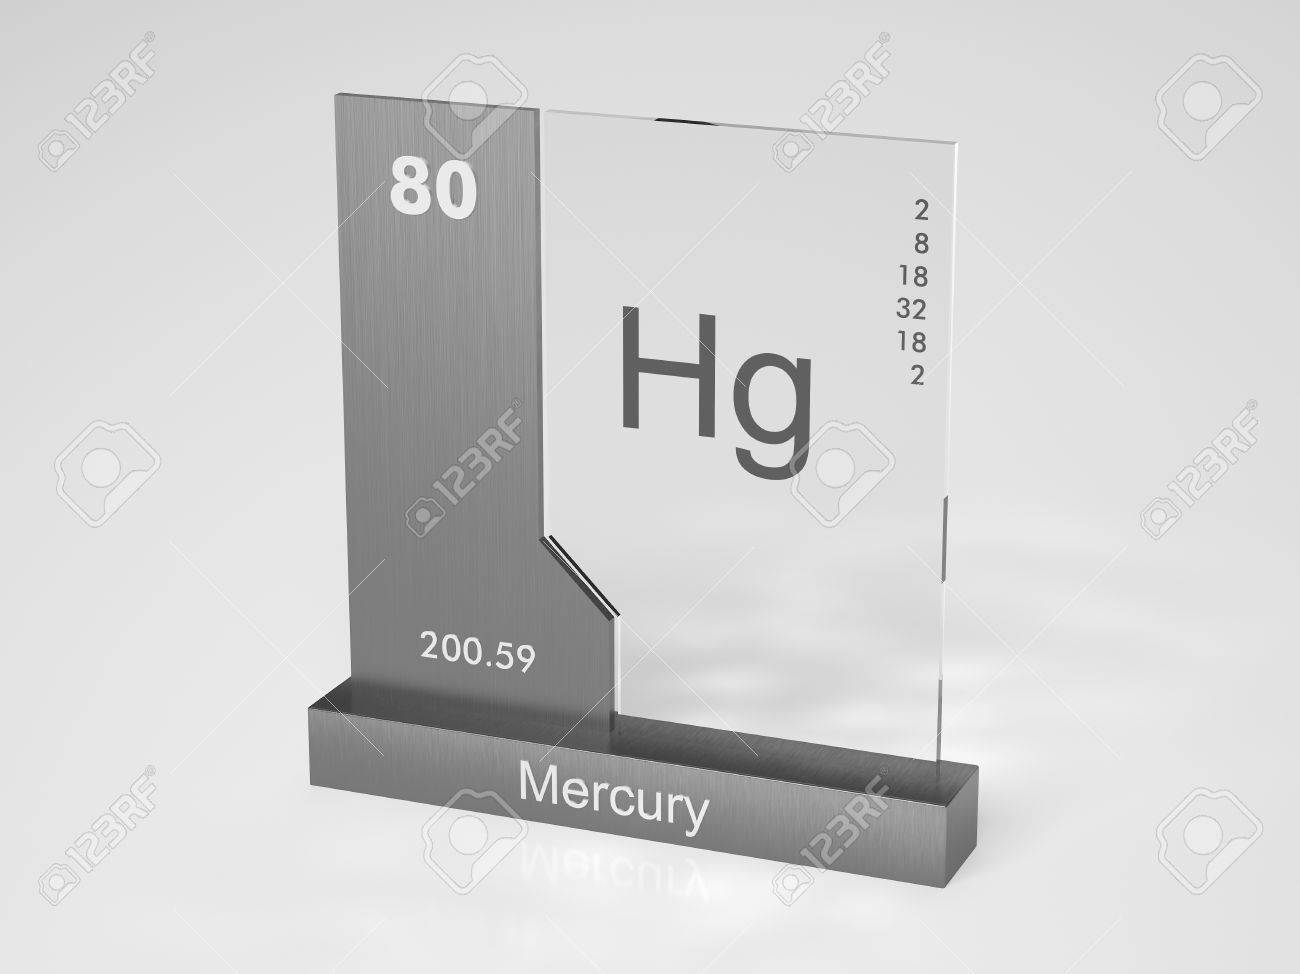 Mercury symbol hg chemical element of the periodic table stock mercury symbol hg chemical element of the periodic table stock photo 10569401 buycottarizona Gallery